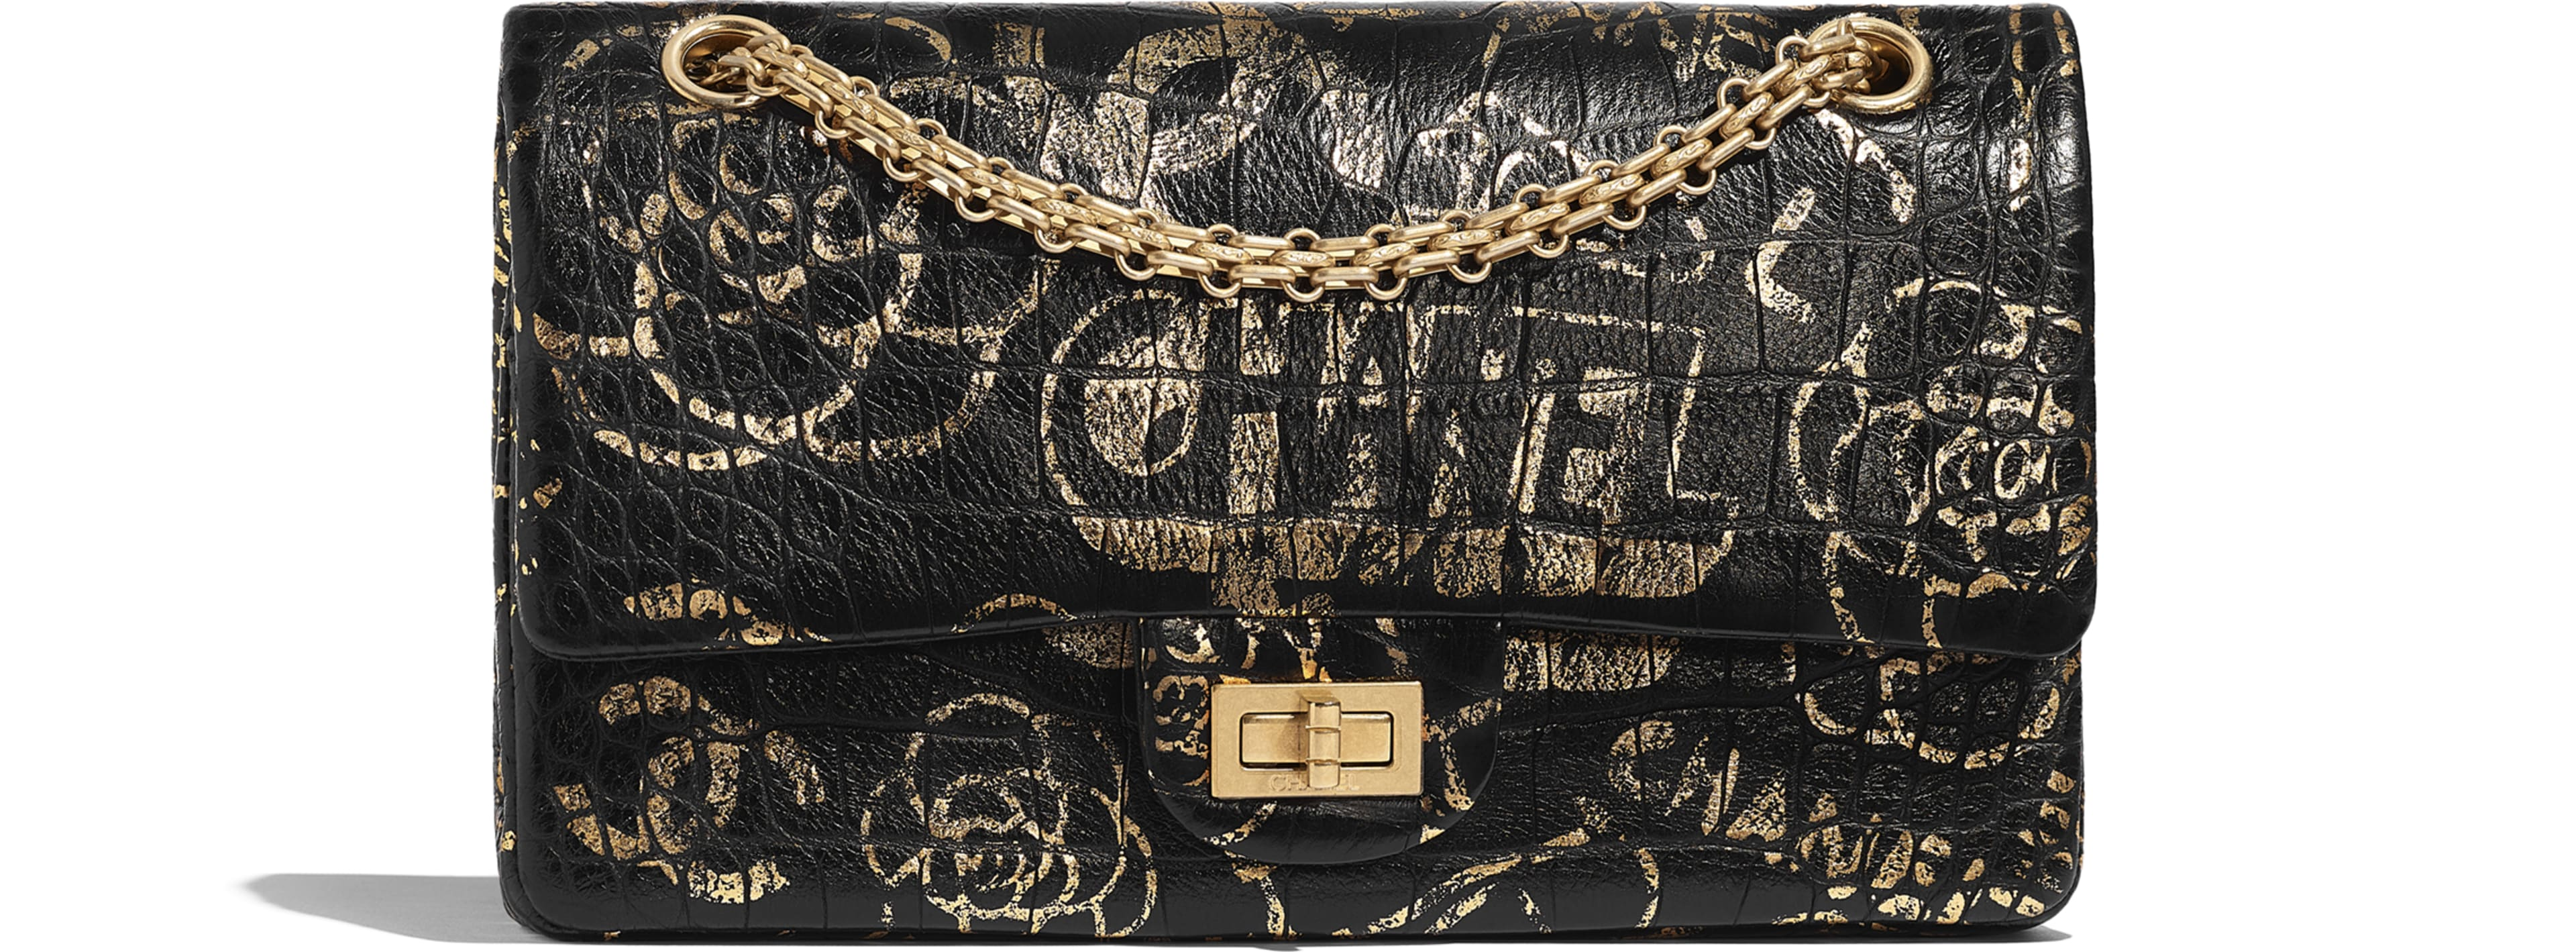 Crocodile Embossed Printed Leather & Gold-Tone Metal Black & Gold